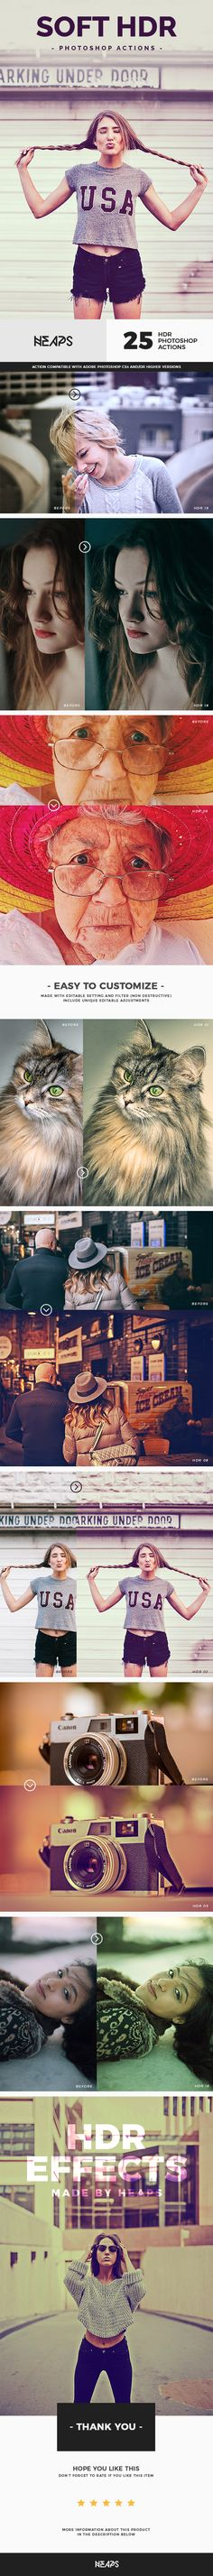 25 Soft HDR Photoshop Actions - Photo Effects Actions Download here: https://graphicriver.net/item/25-soft-hdr-photoshop-actions/20099604?https://graphicriver.net/item/smart-skin-retouch-effects/20126989?ref=classicdesignp